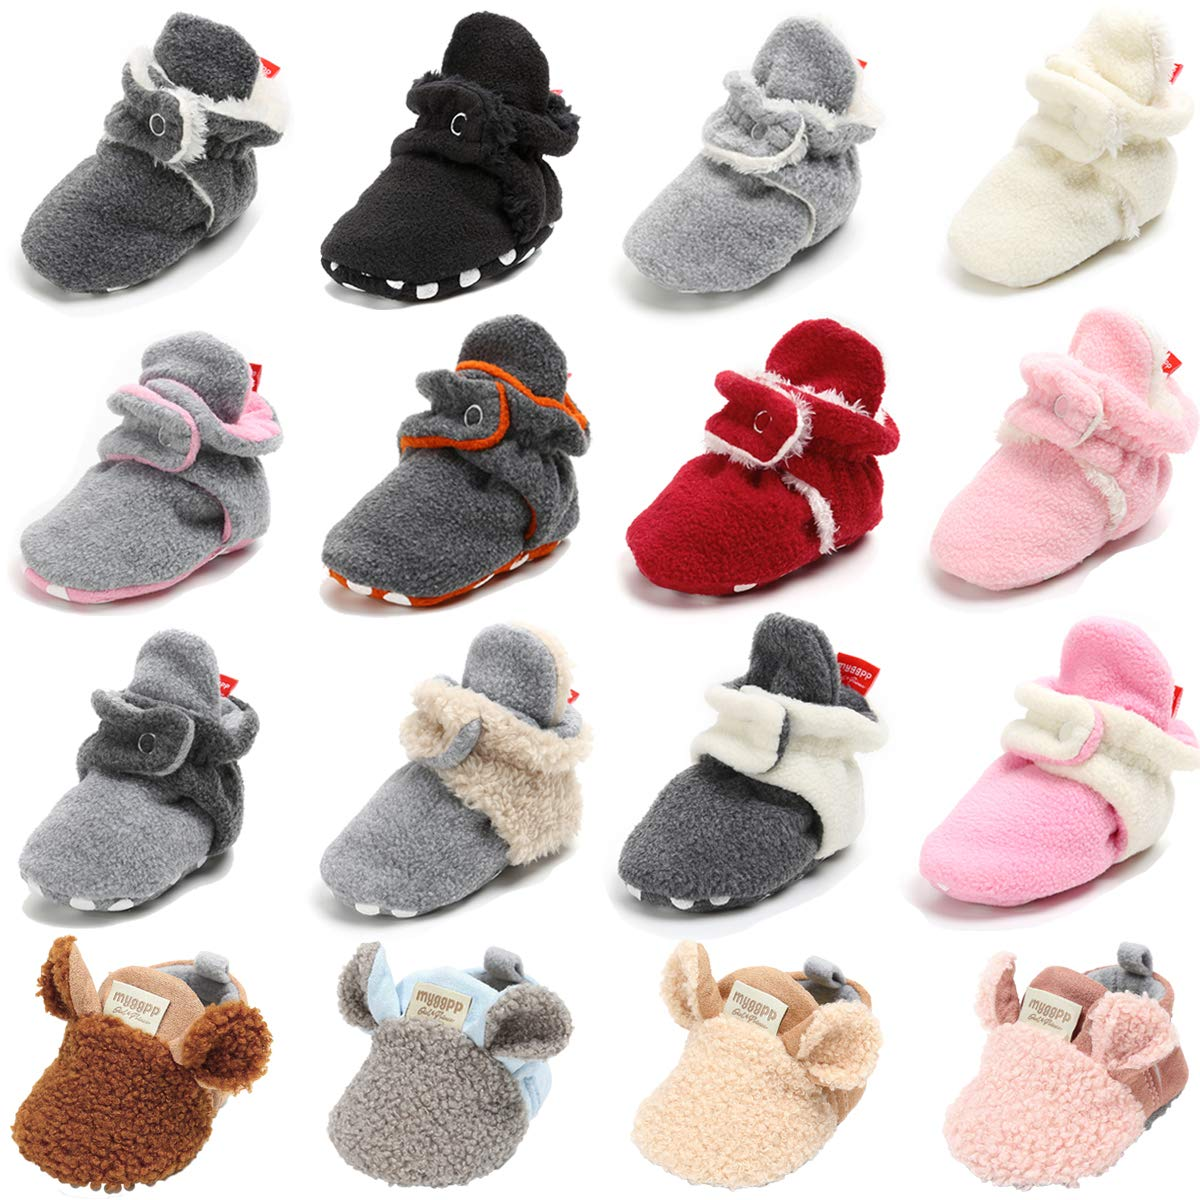 98823db7d9c BENHERO Newborn Baby Boys Girls Cozy Fleece Stay on Booties with Grippers  Infant Slippers Winter Socks Non Skid Crib Shoes